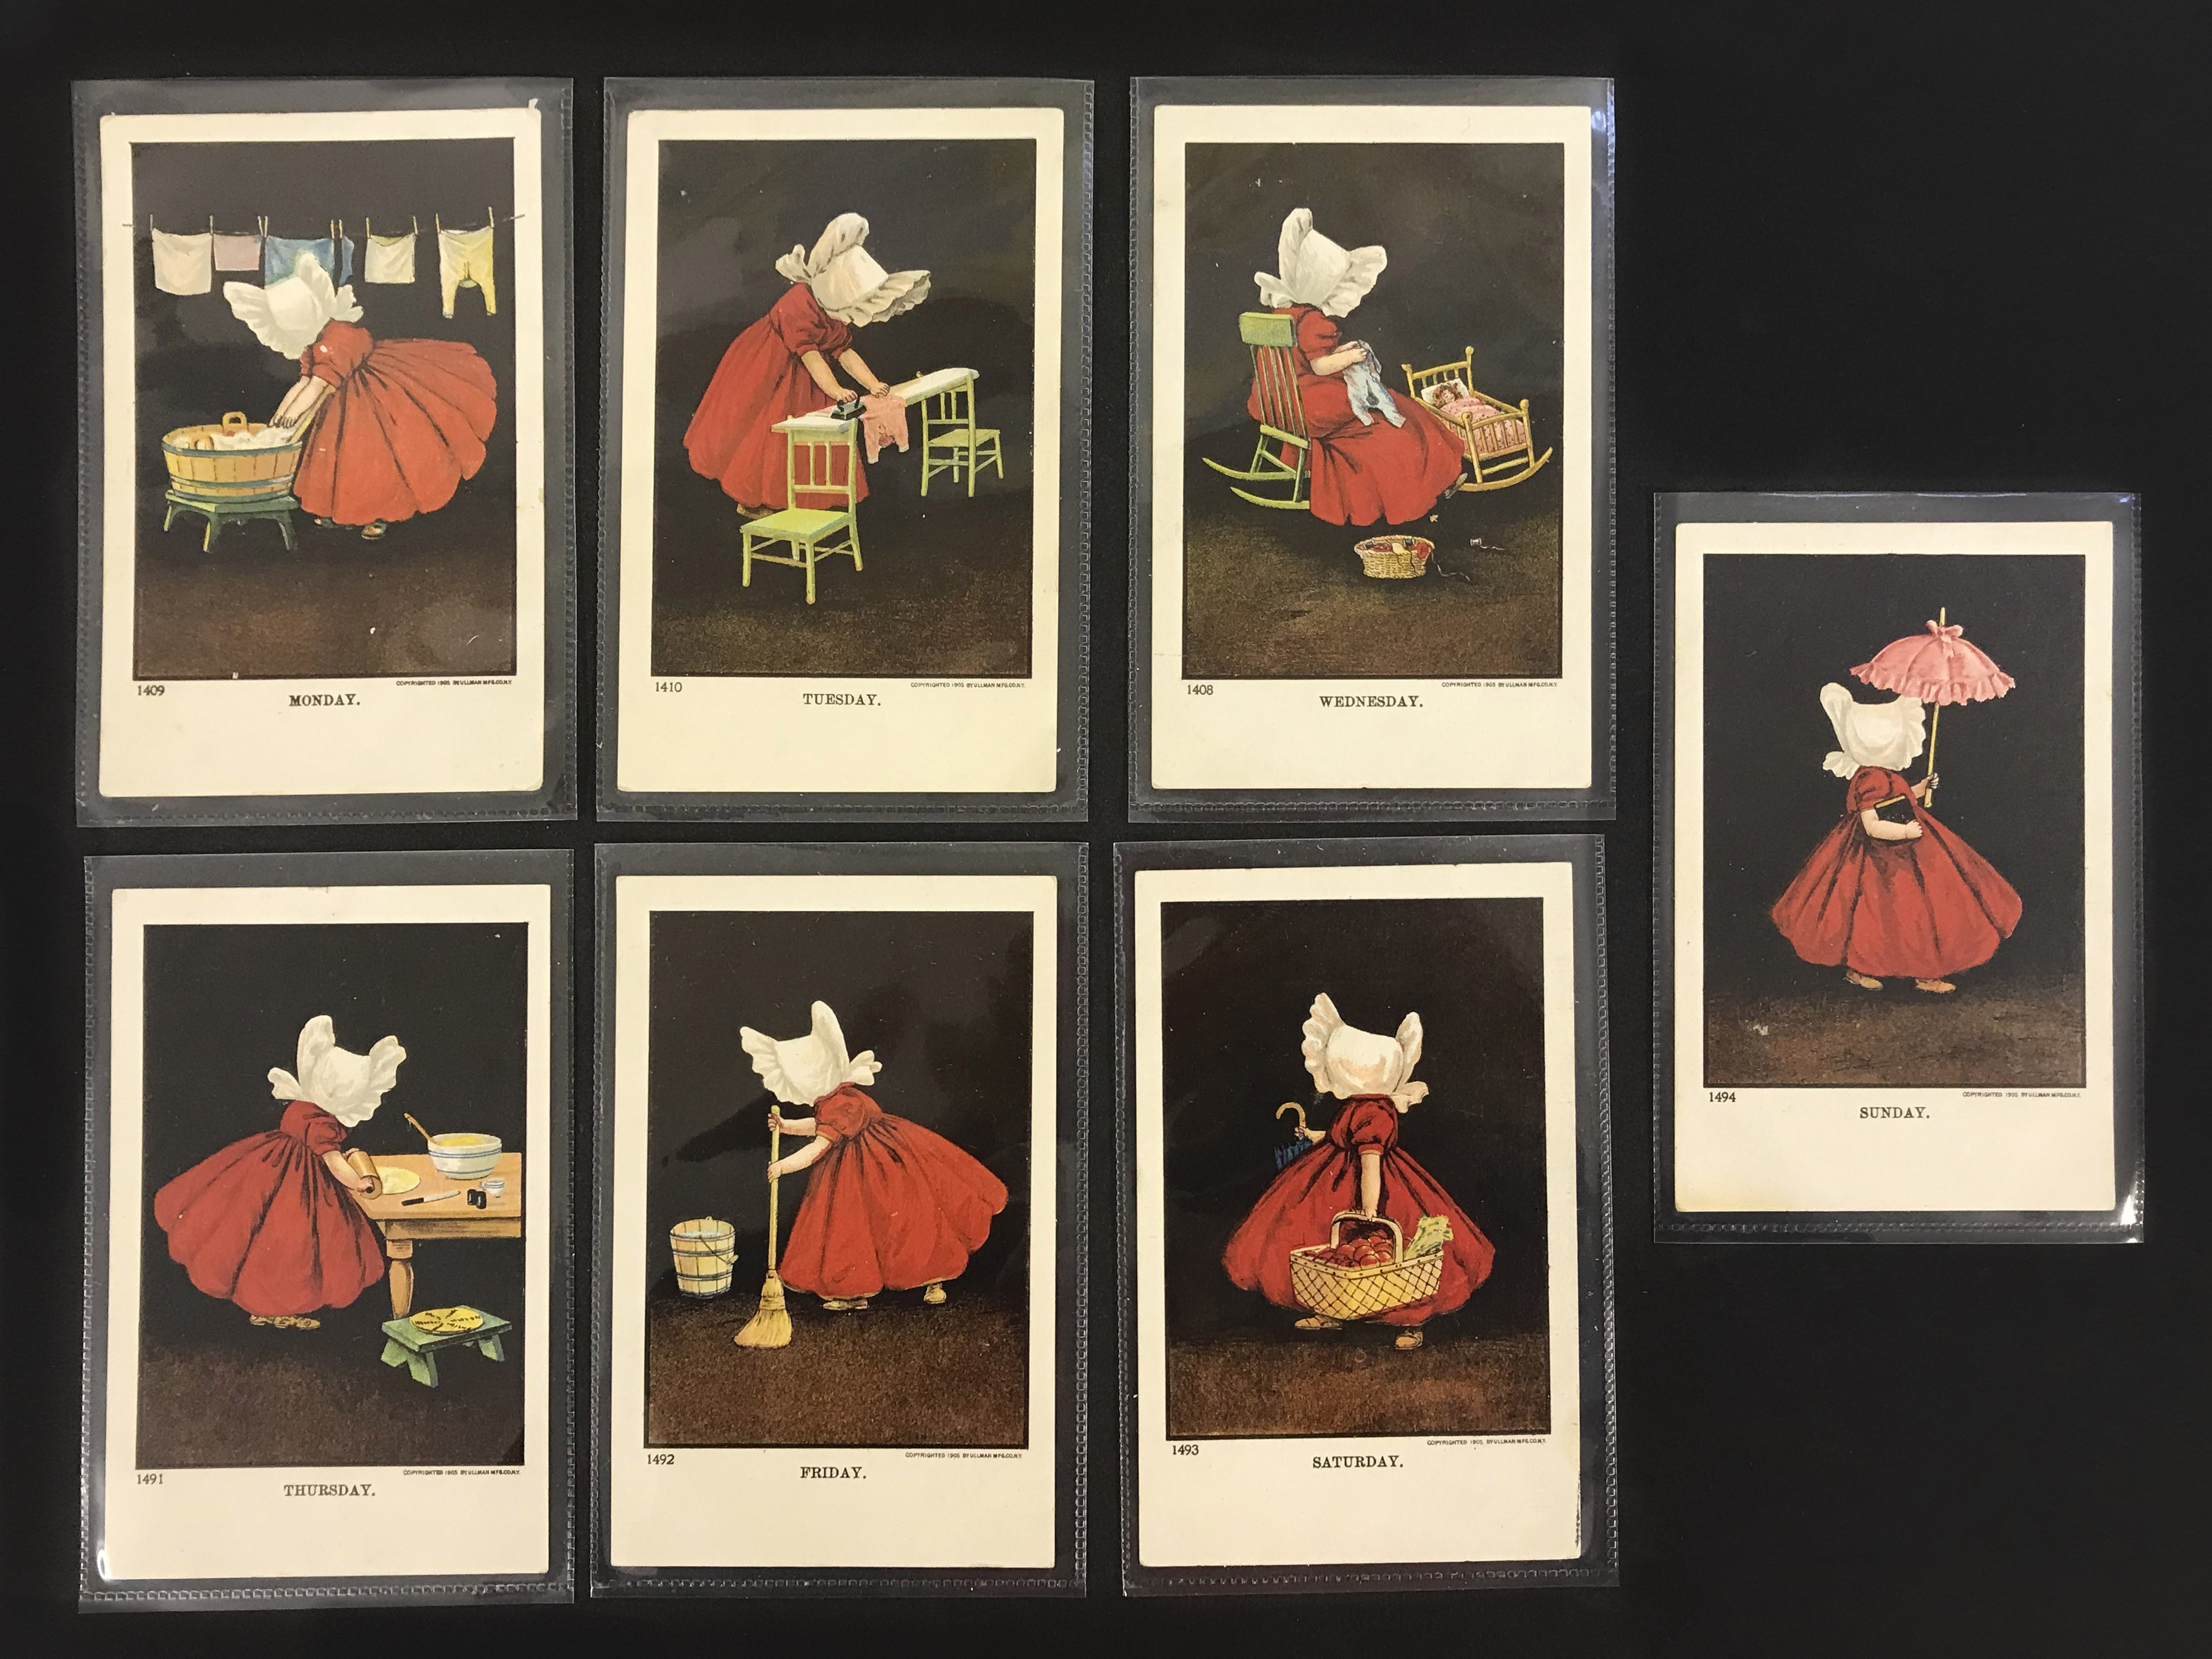 Ullman Manufacturing Co. Postcards - Complete set of Sunbonnet Baby Days